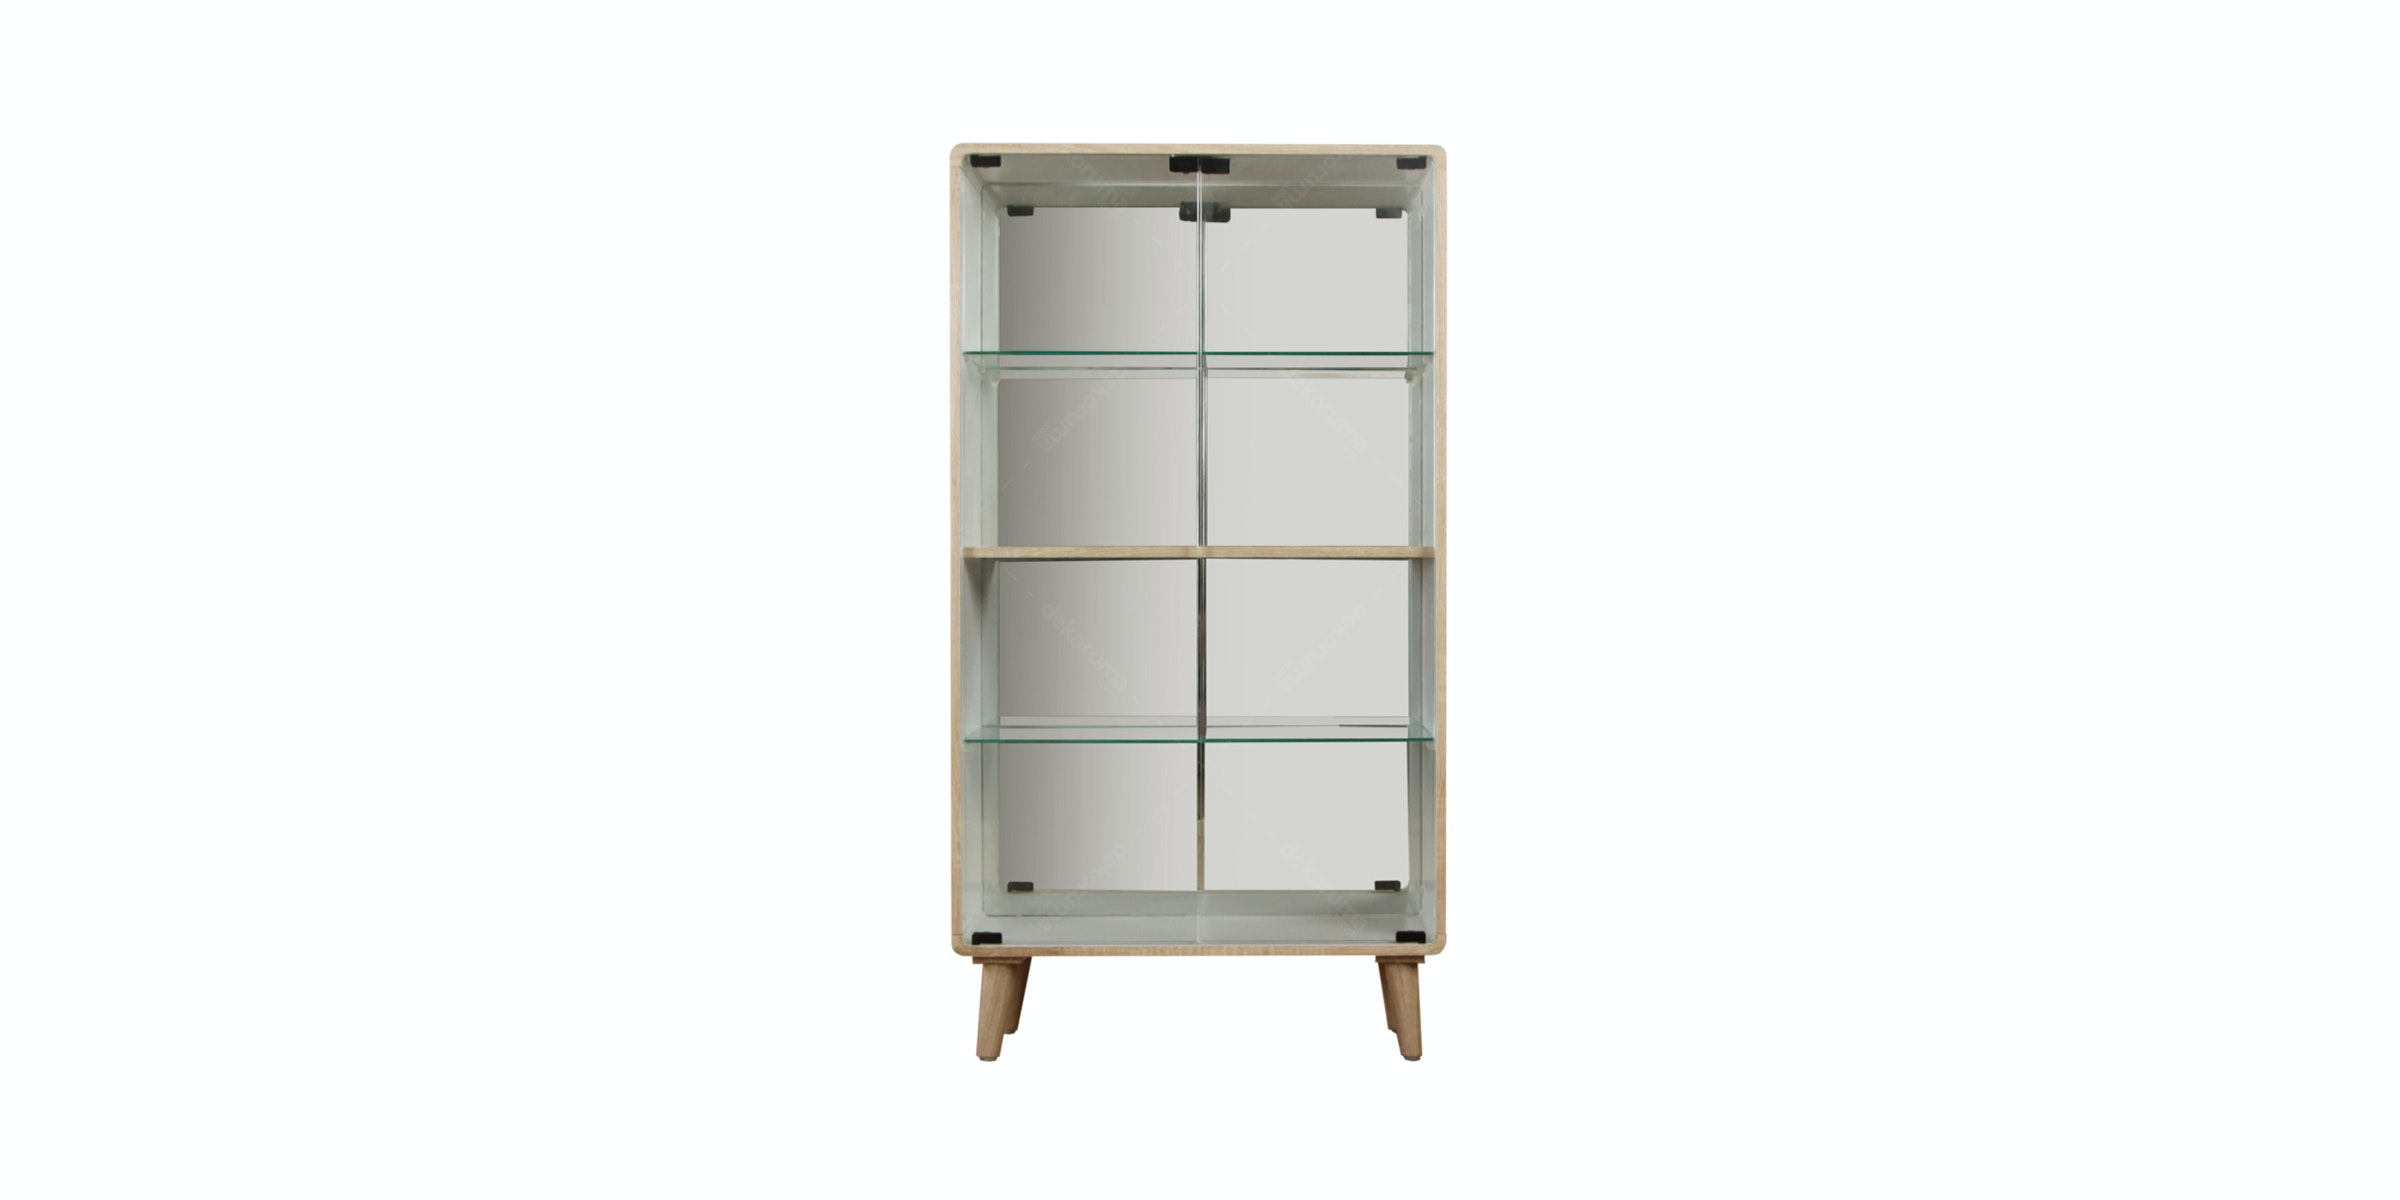 Olympic Curla Series-Display Cabinet Big